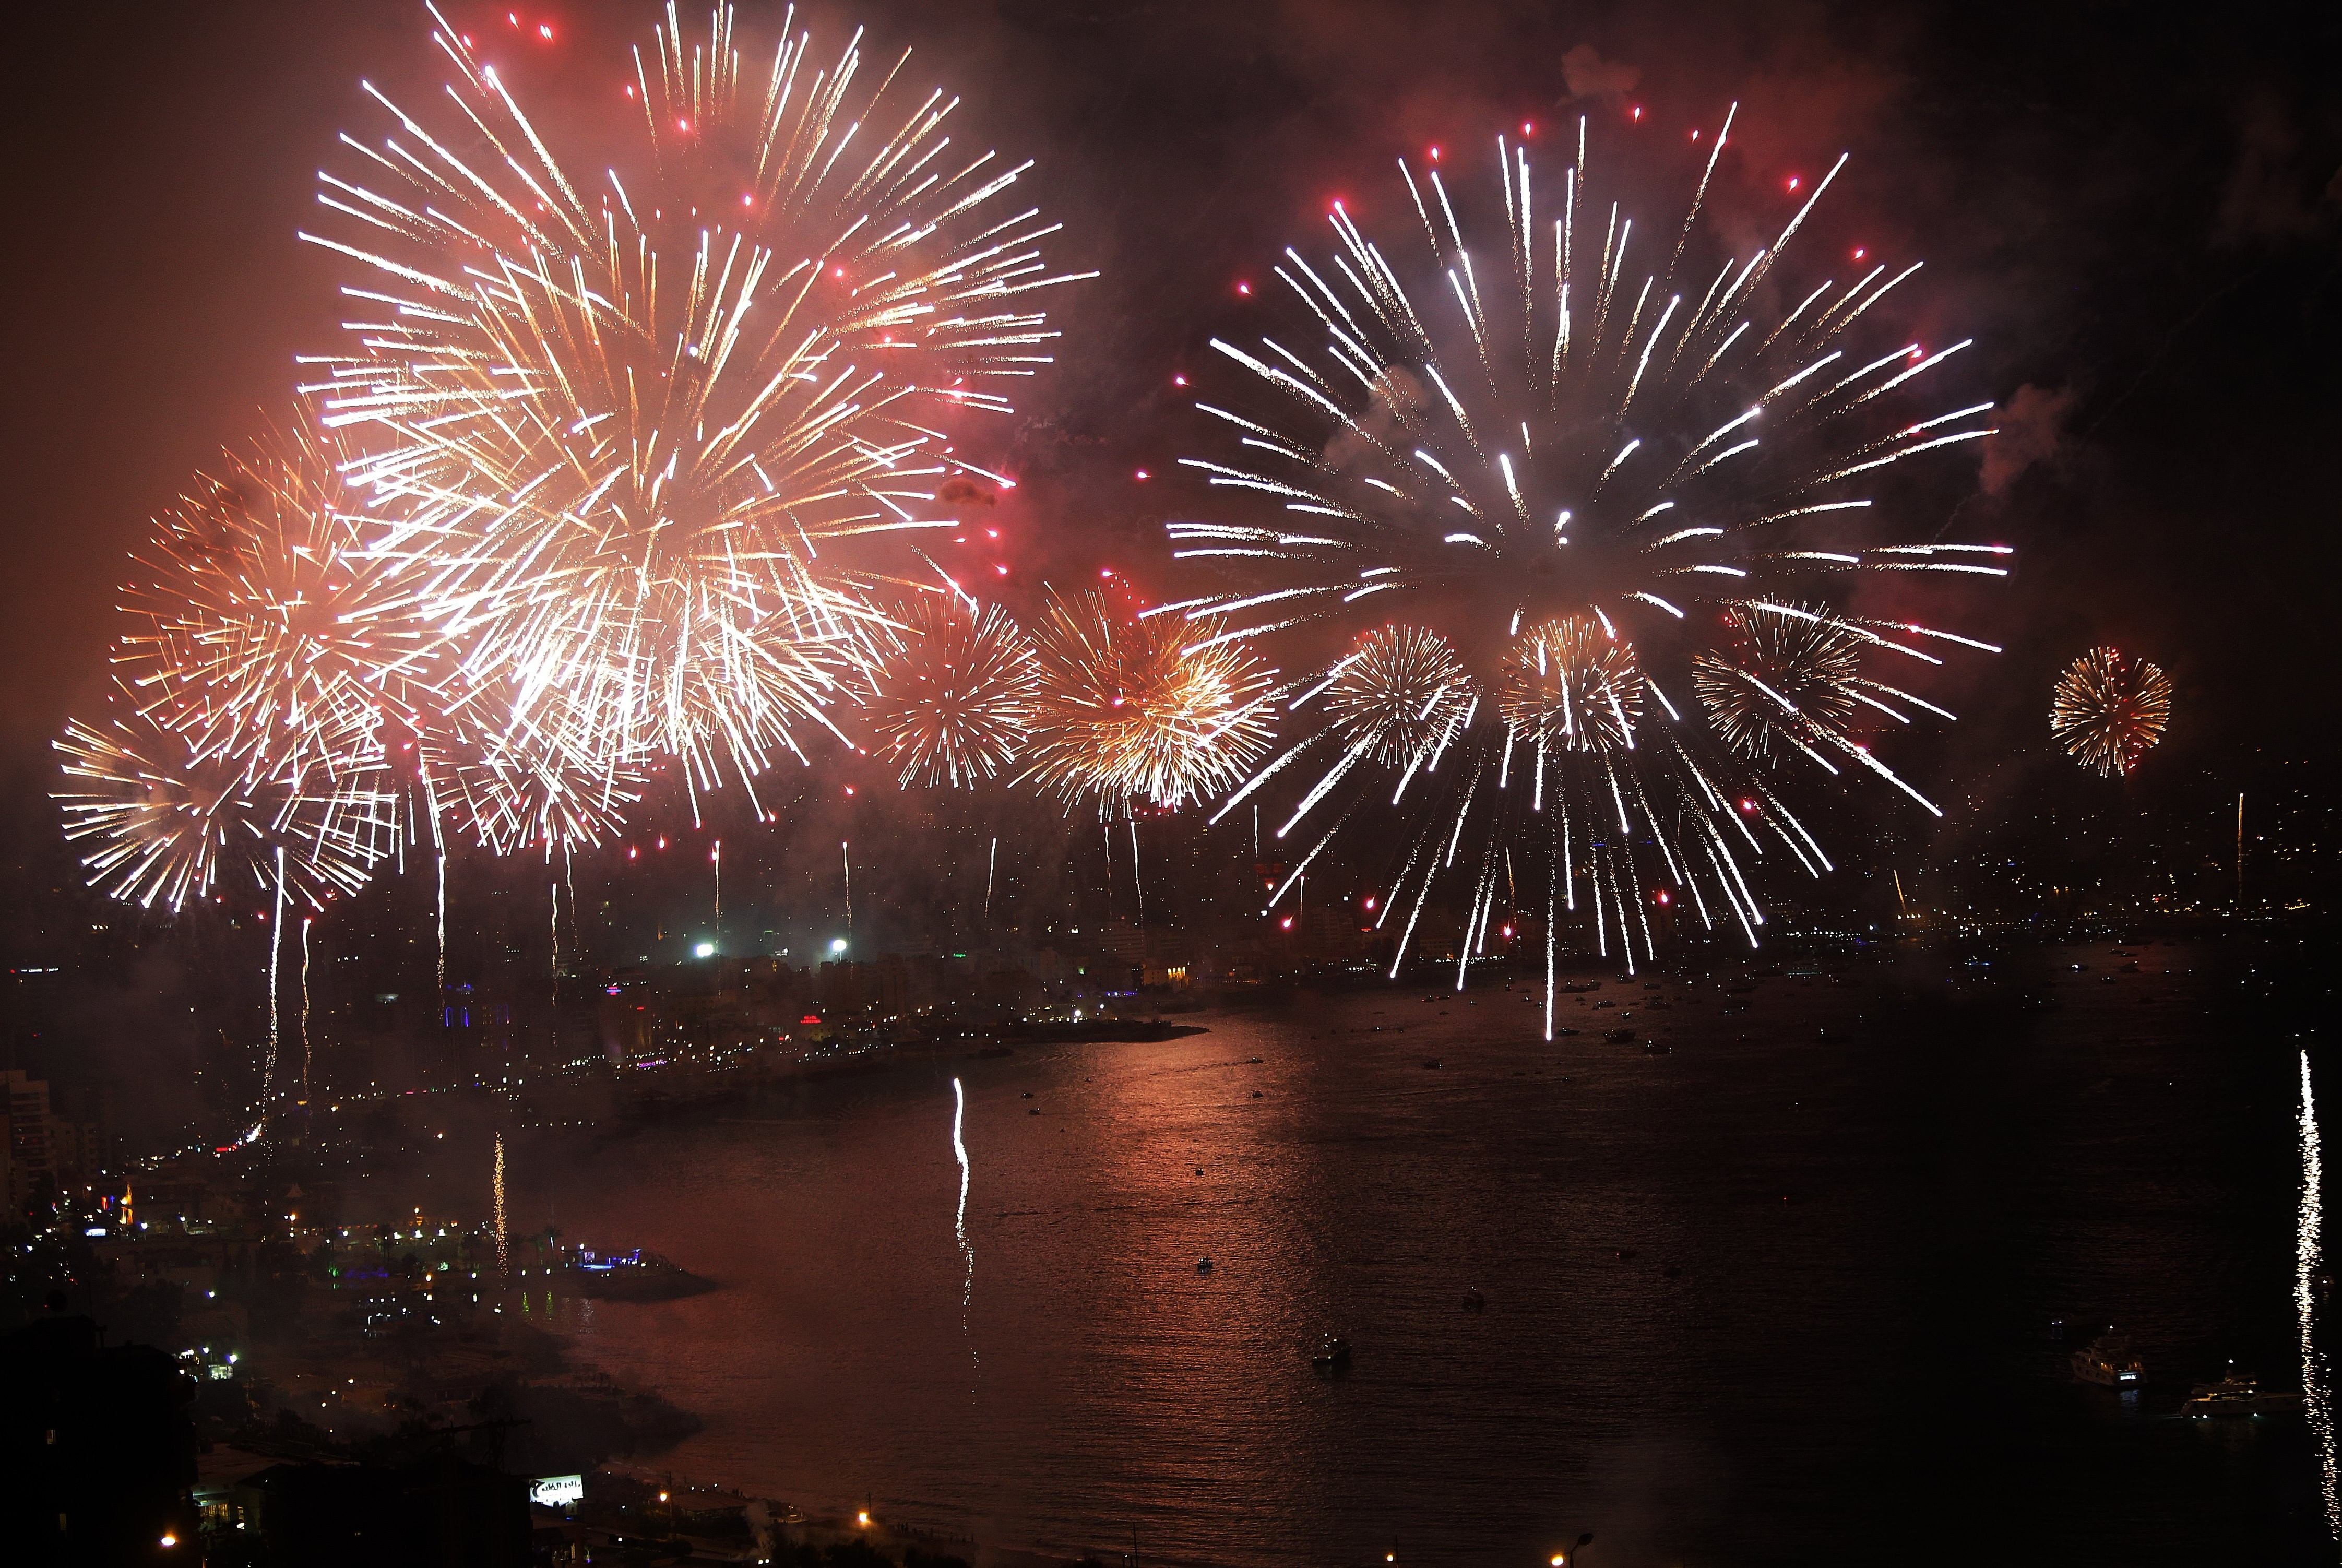 Fireworks light the skies of Lebanon's Jounieh Bey, during the opening ceremony of Jounieh International Festival on June 27, 2014.